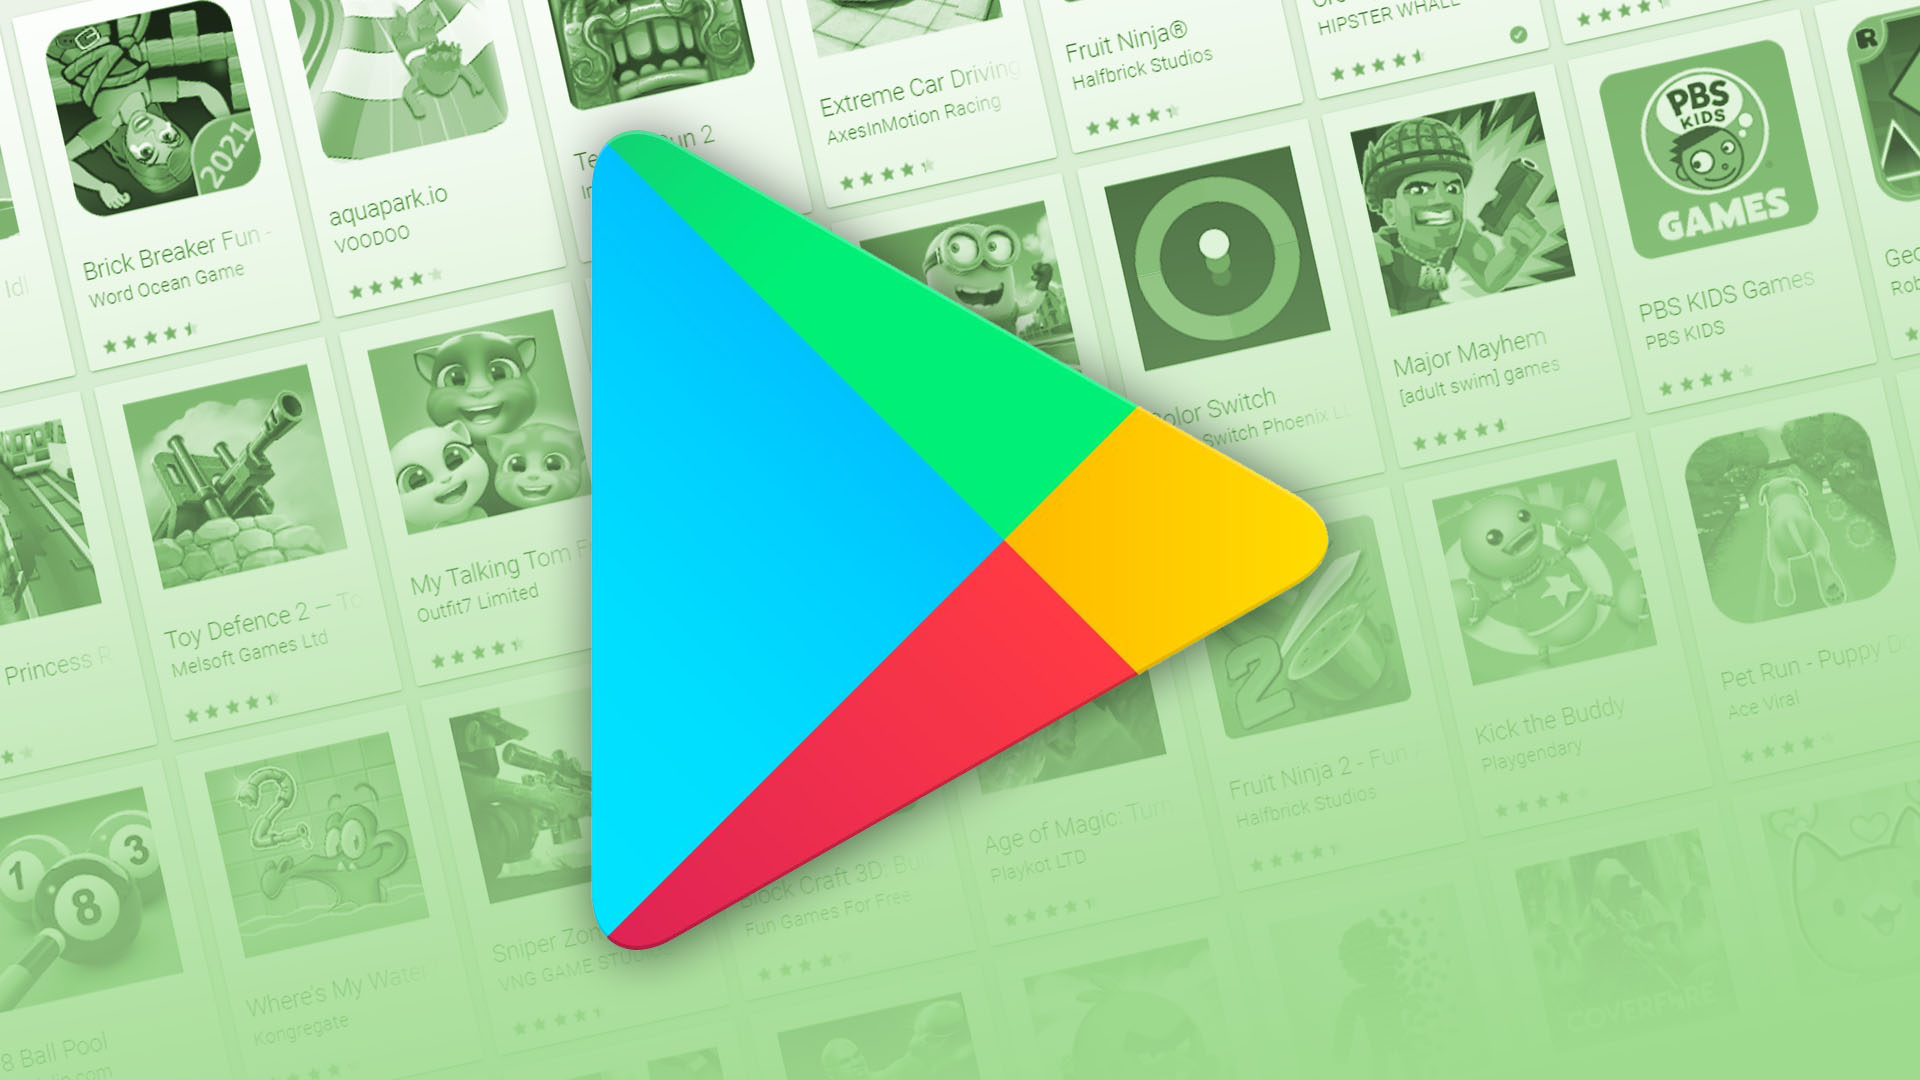 Following Apple's lead, Google cuts Play Store fees in half for most developers